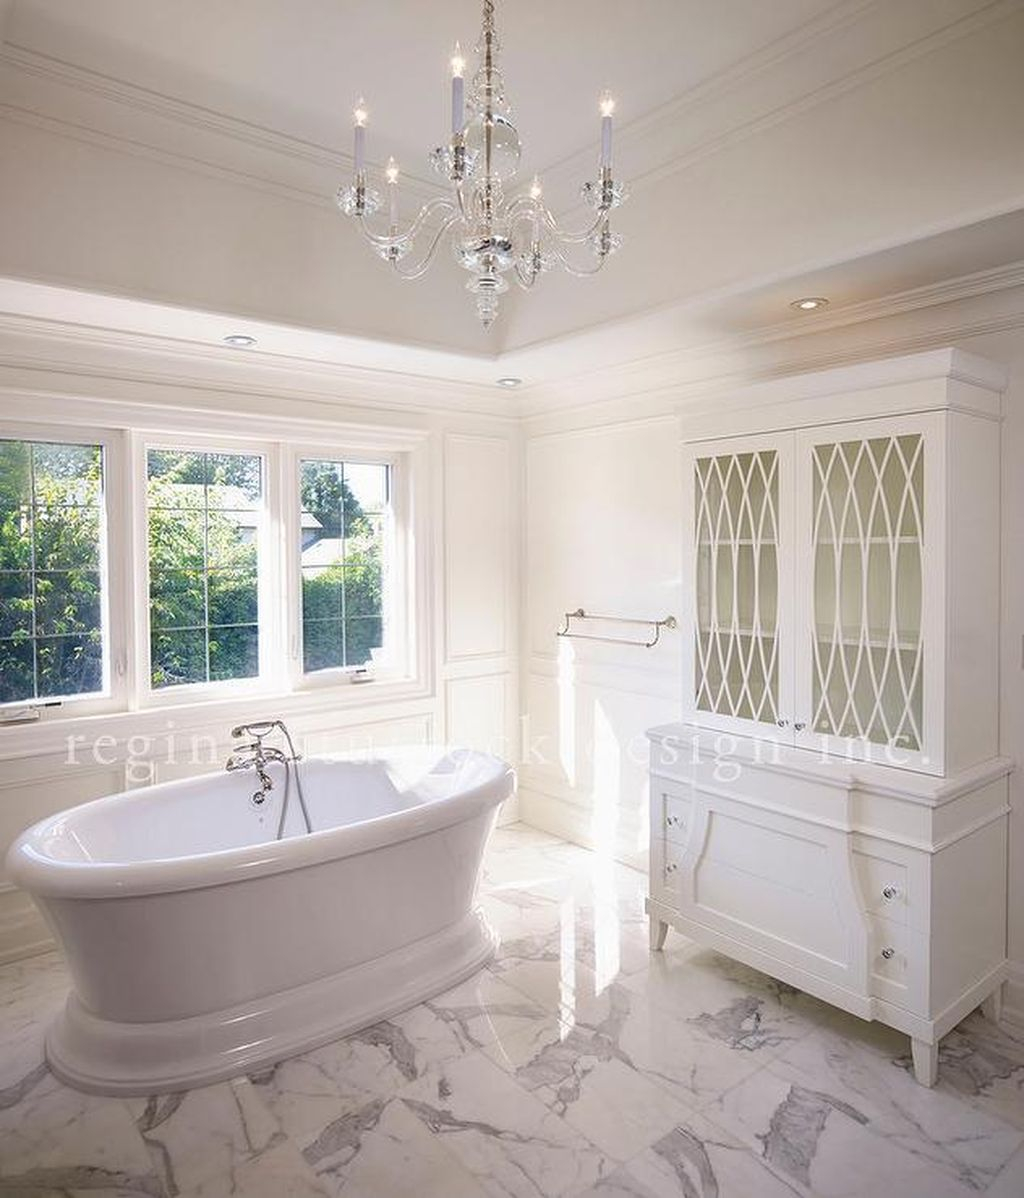 Romantic and elegant bathroom design ideas with chandeliers 87 homedecorish Romantic bathroom design ideas